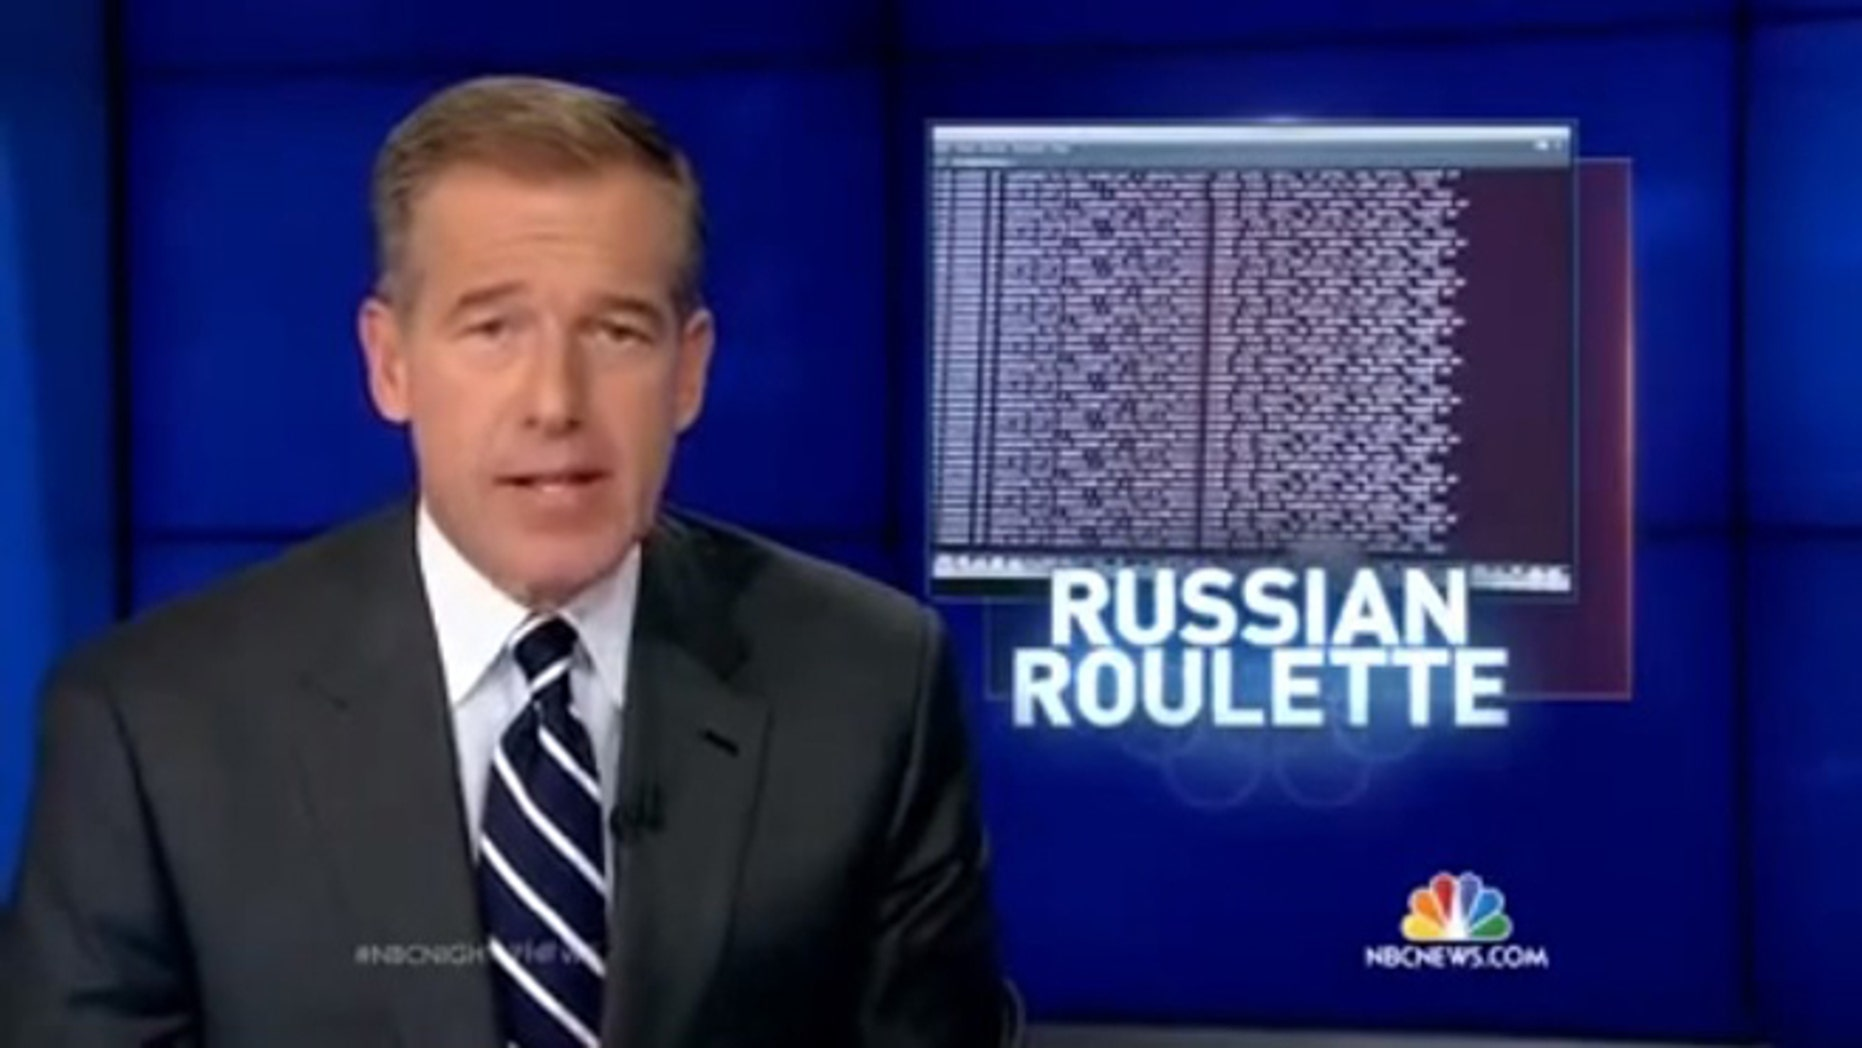 NBC News anchor Brian Williams introduces a report that cell phones and laptops taken to the Sochi Olympics in Russia can be hacked almost as soon as they are turned on.